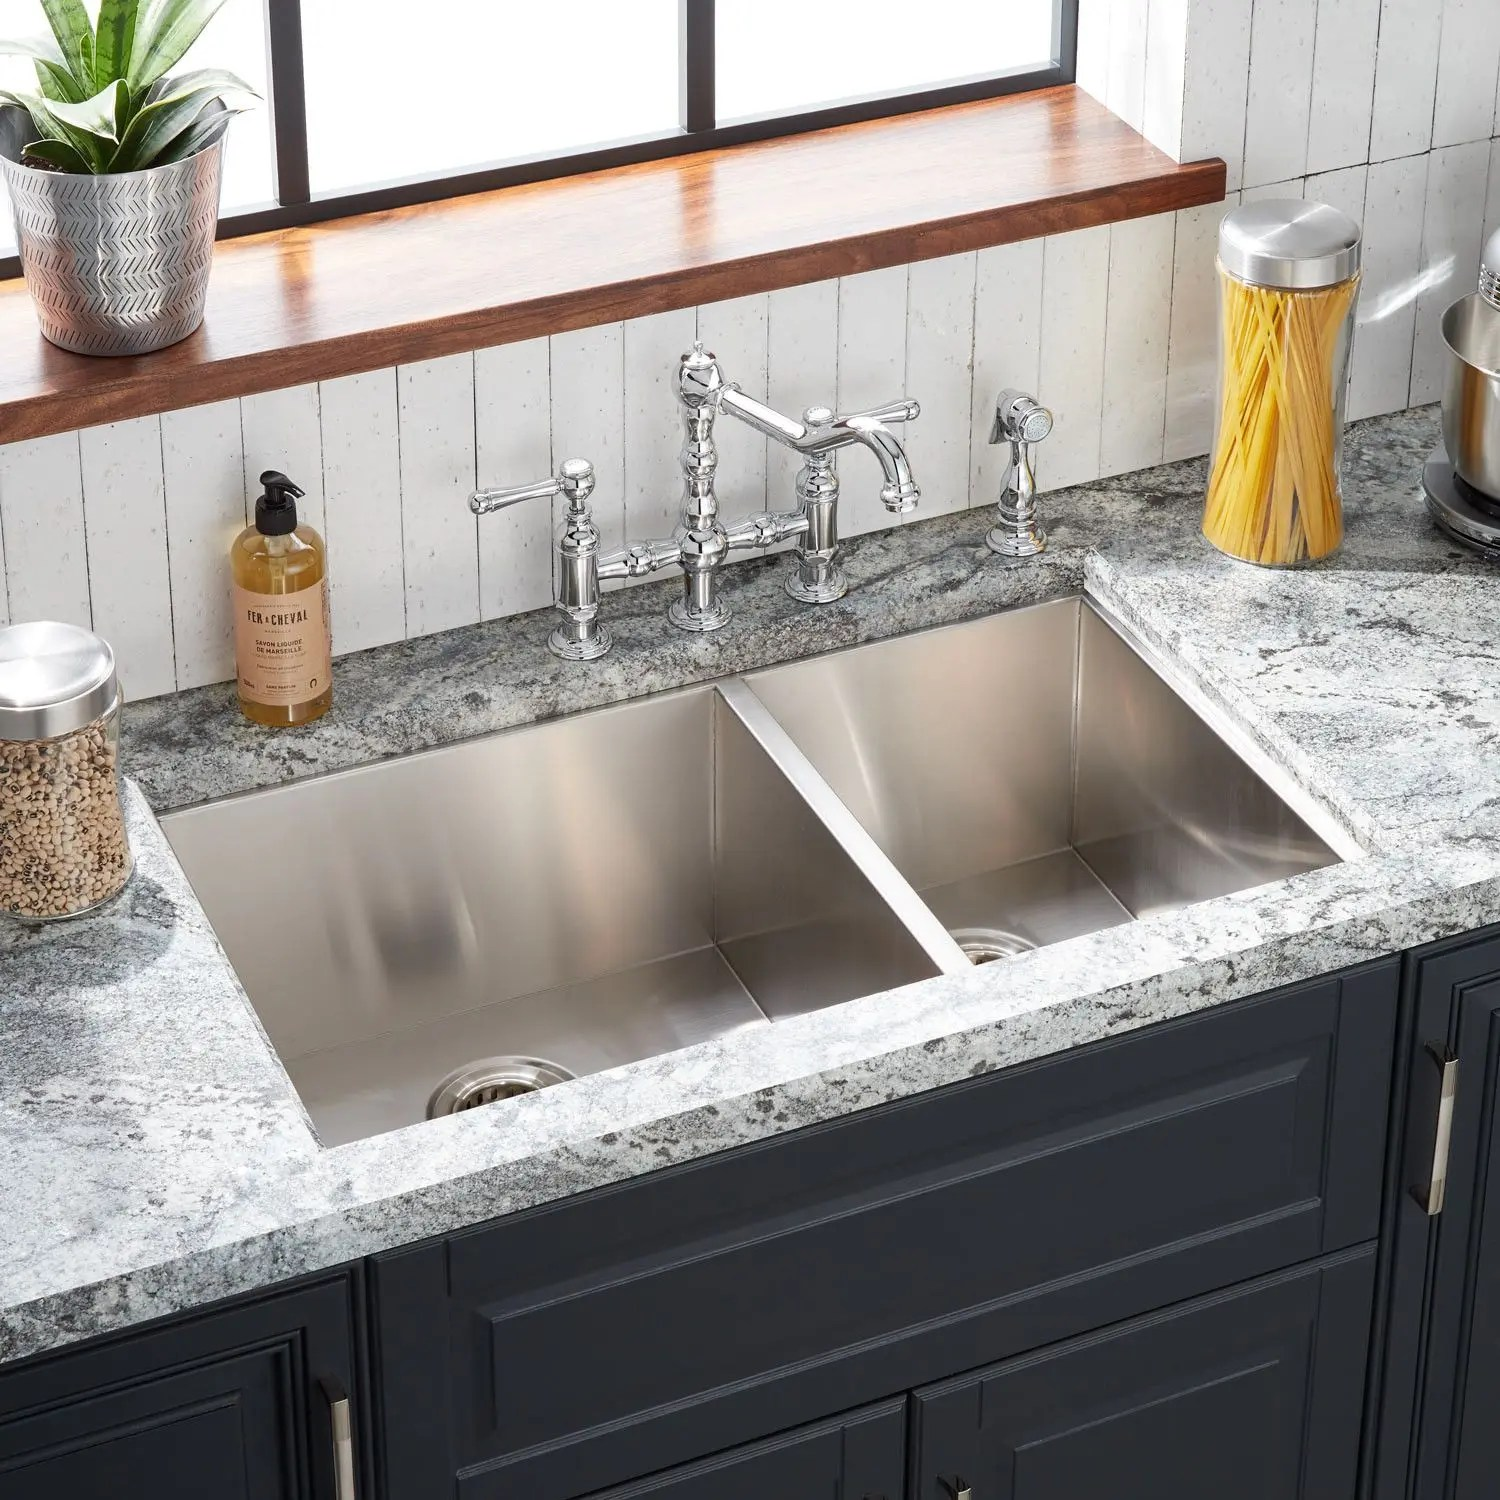 33 sitka offset double bowl stainless steel undermount sink 4 hole